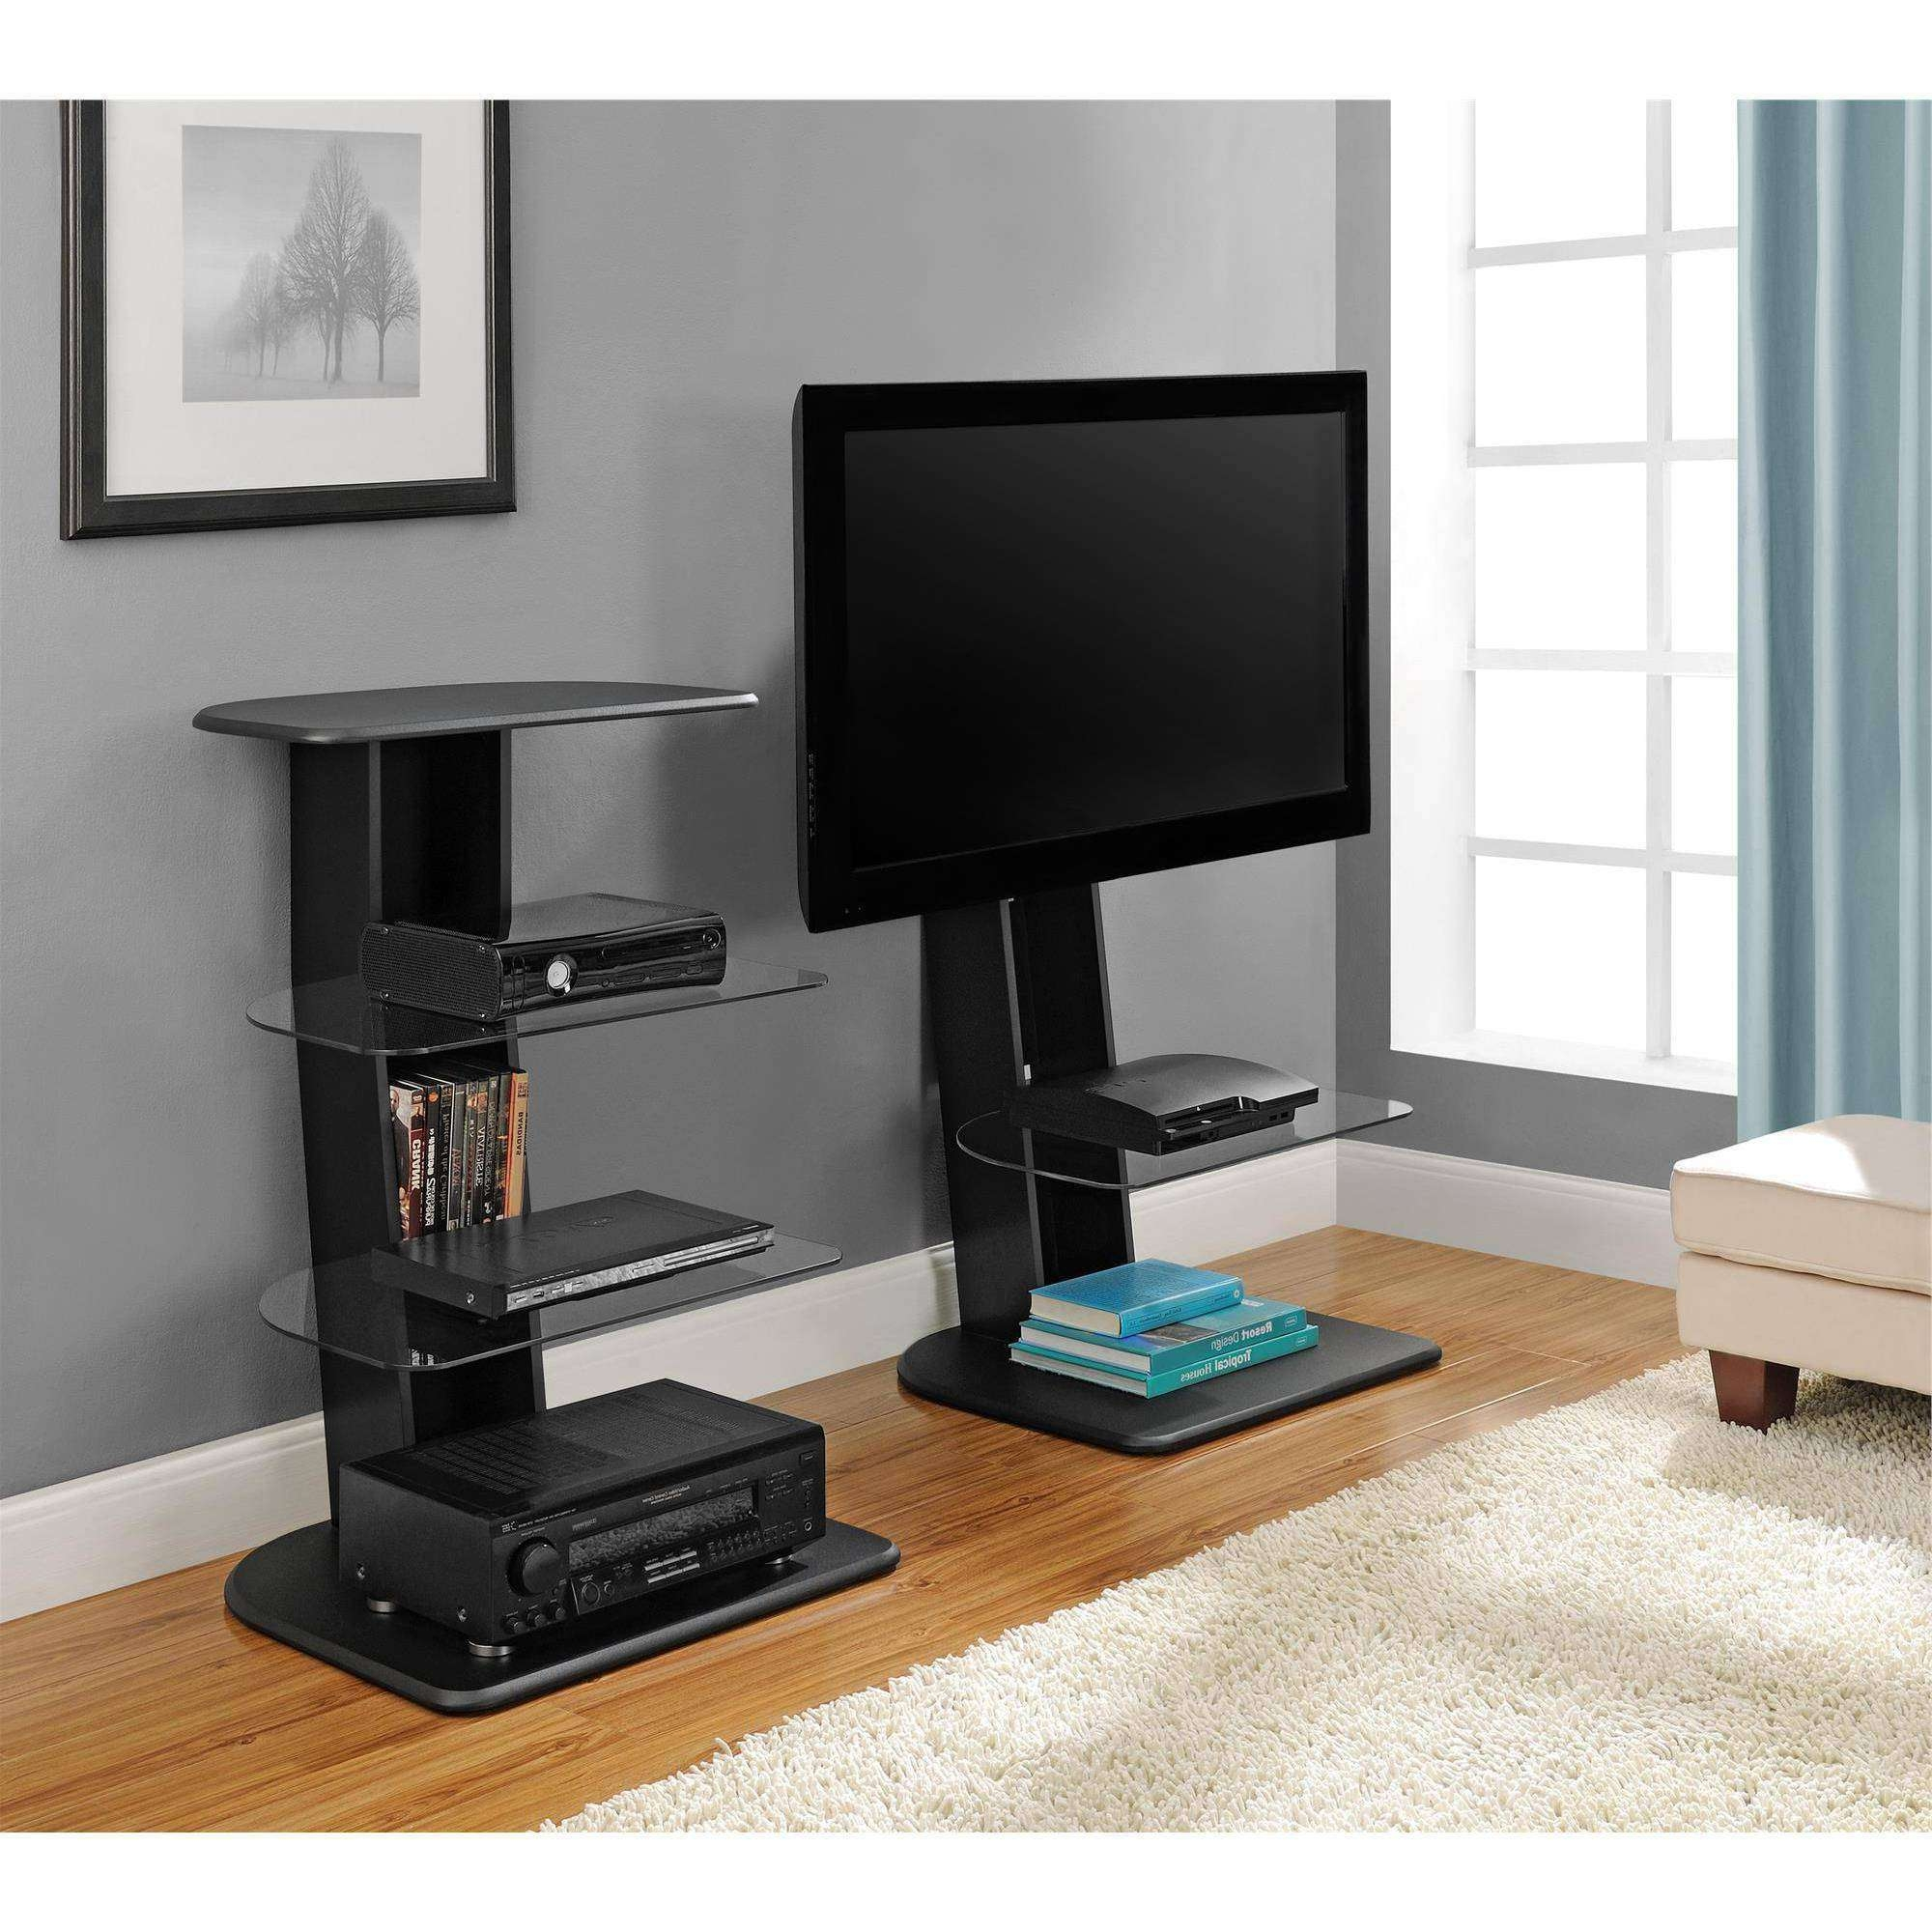 Good Slim Tv Stand 45 For Your Interior Decor Home With Slim Tv With Regard To Slim Tv Stands (Gallery 10 of 20)